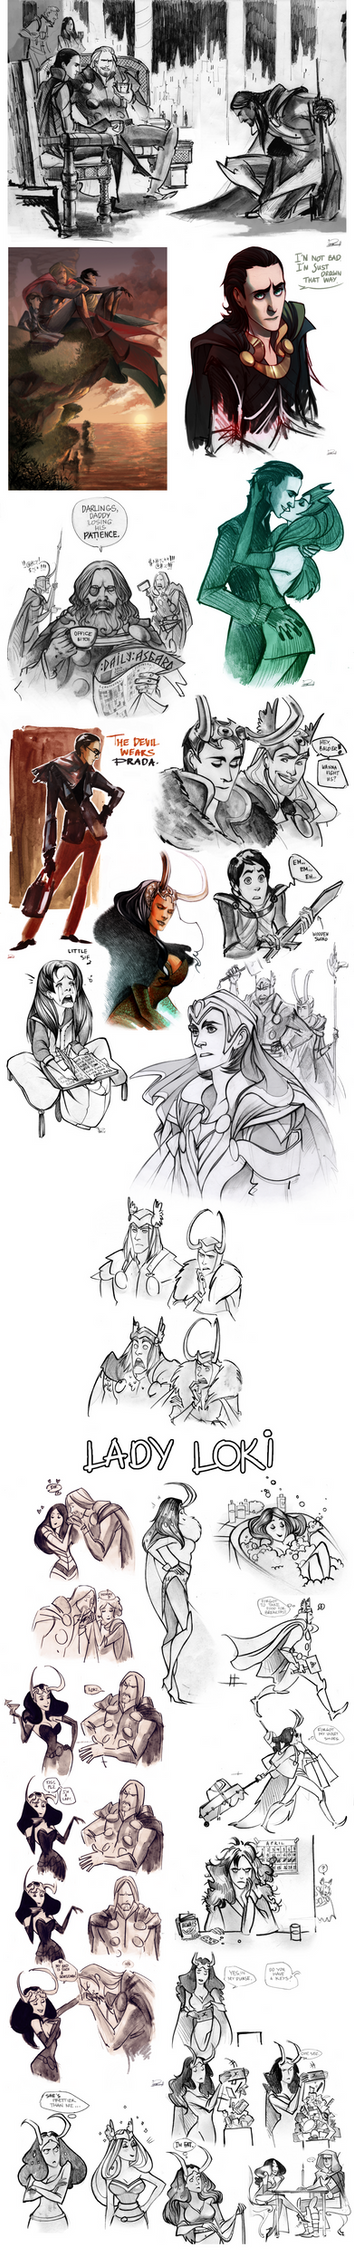 Thor sketchdump II by Phobs